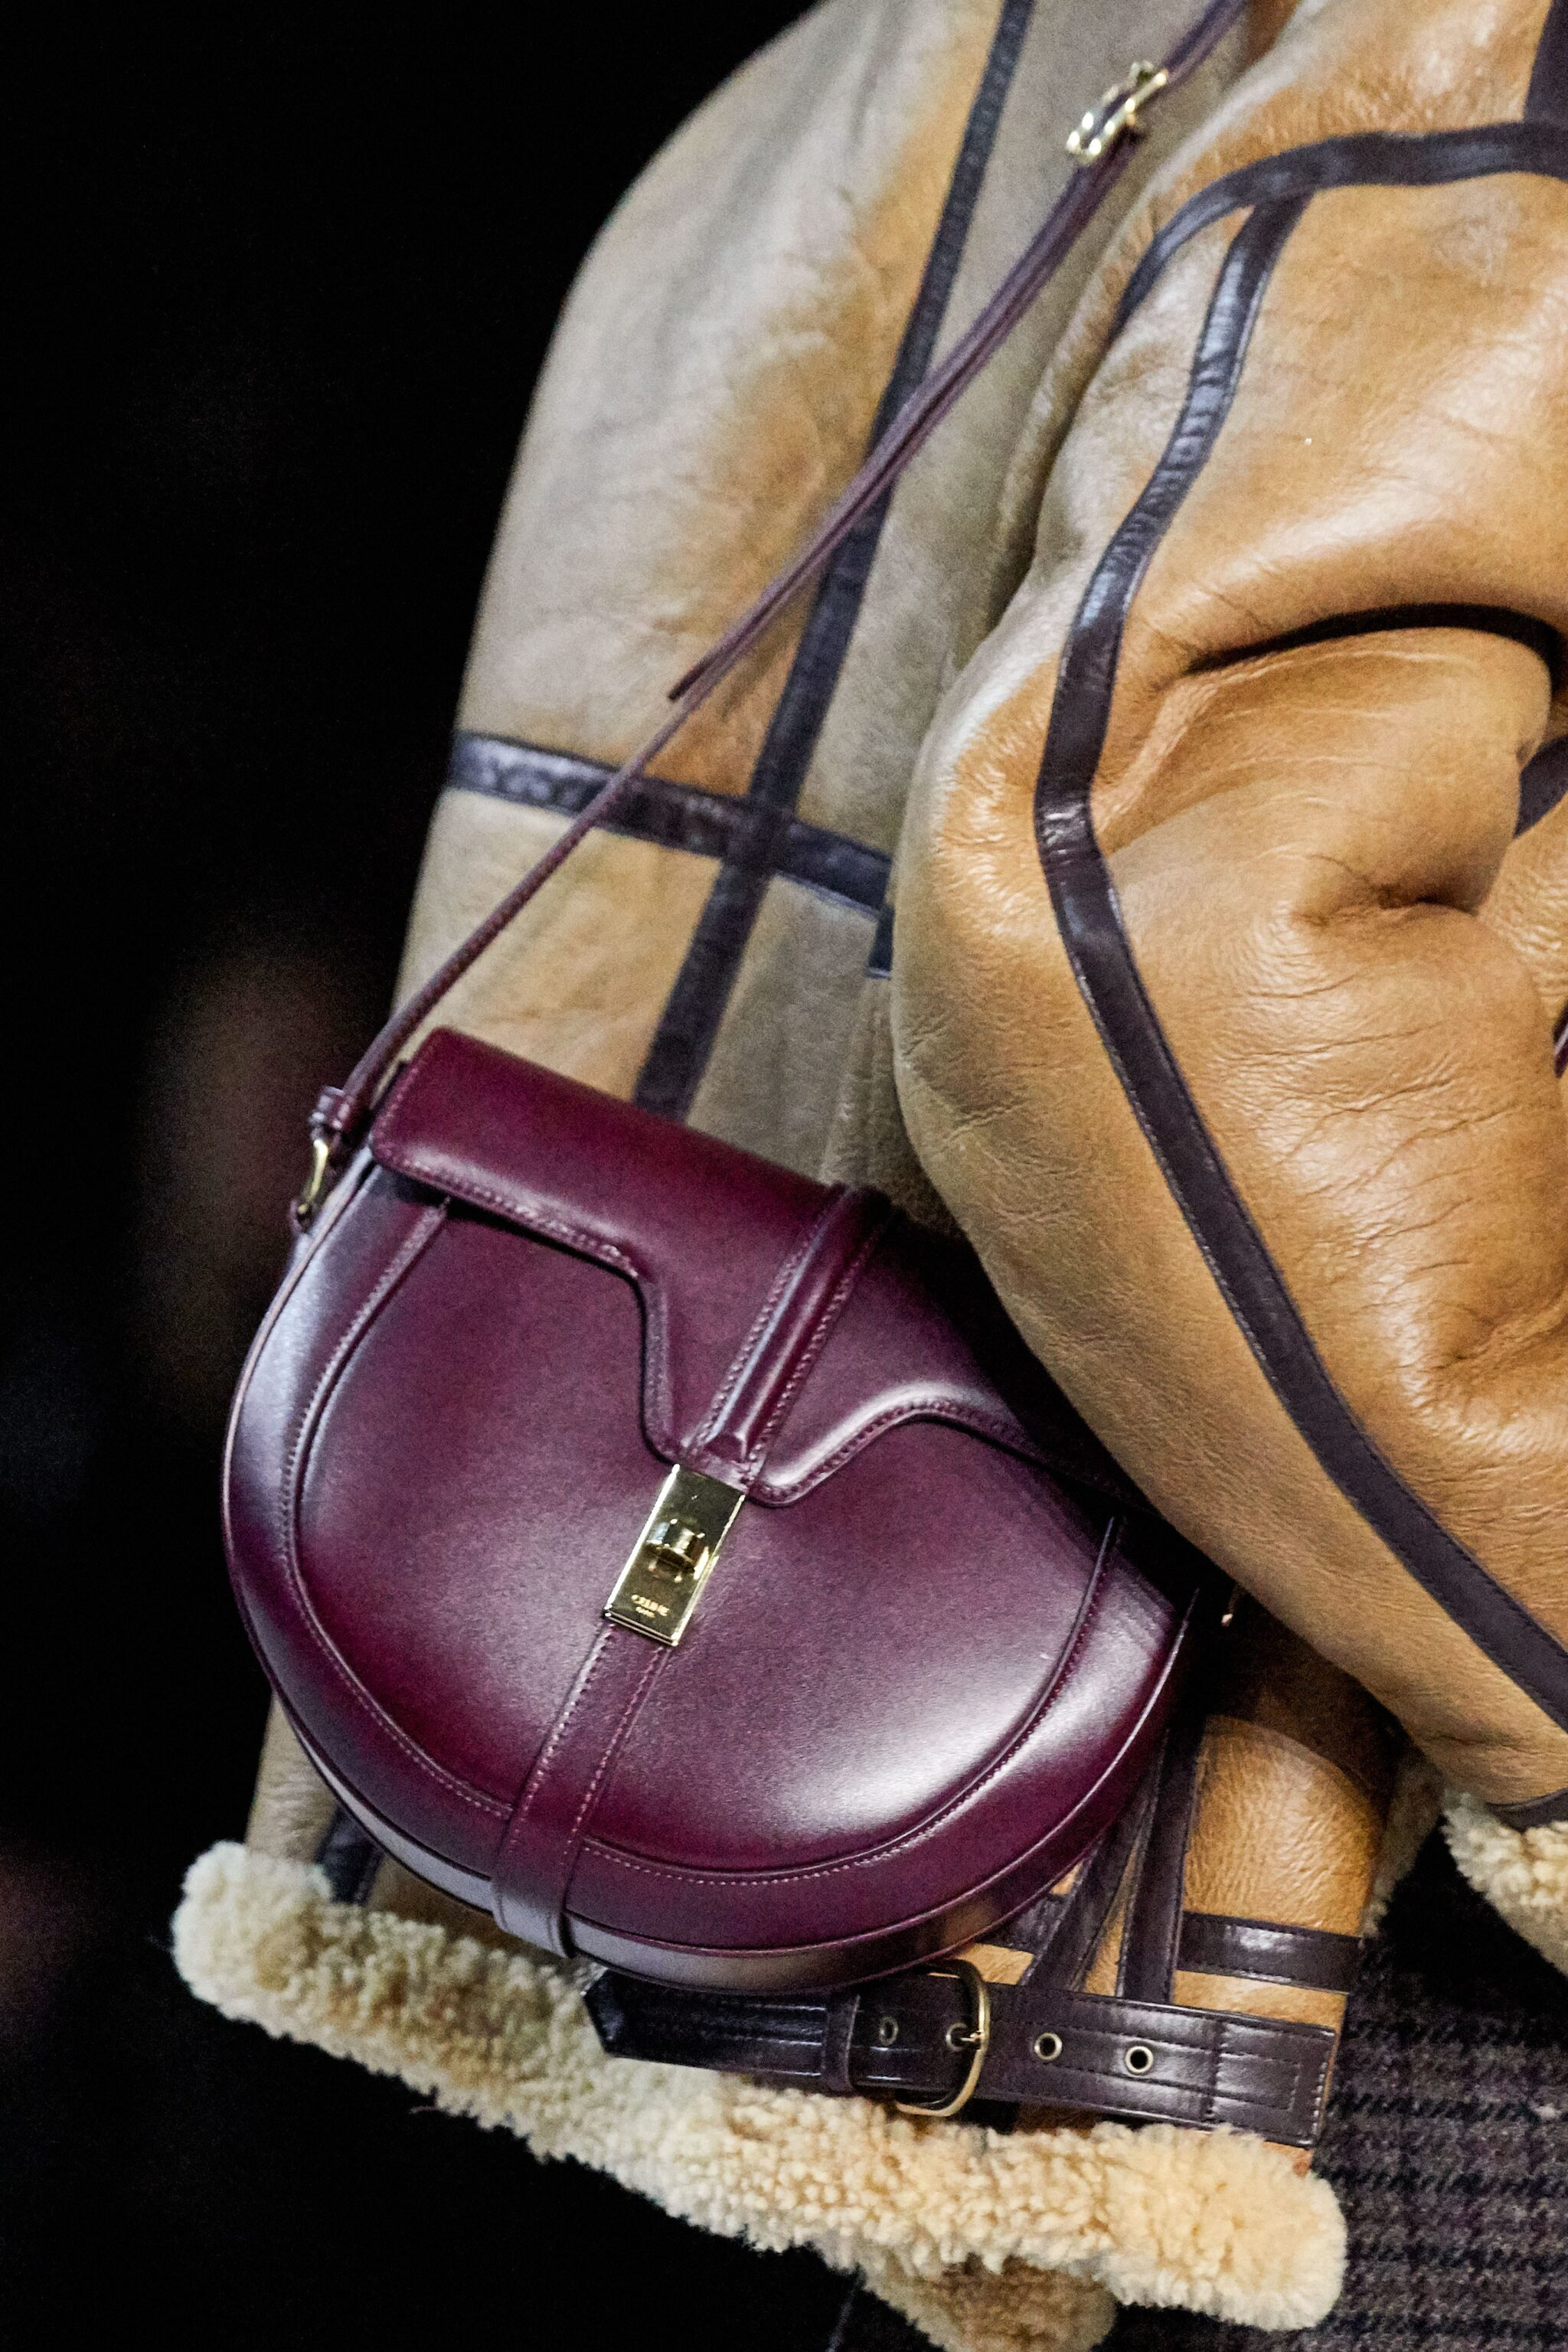 Celine Fall Winter 2019 Runway Bag Collection Spotted